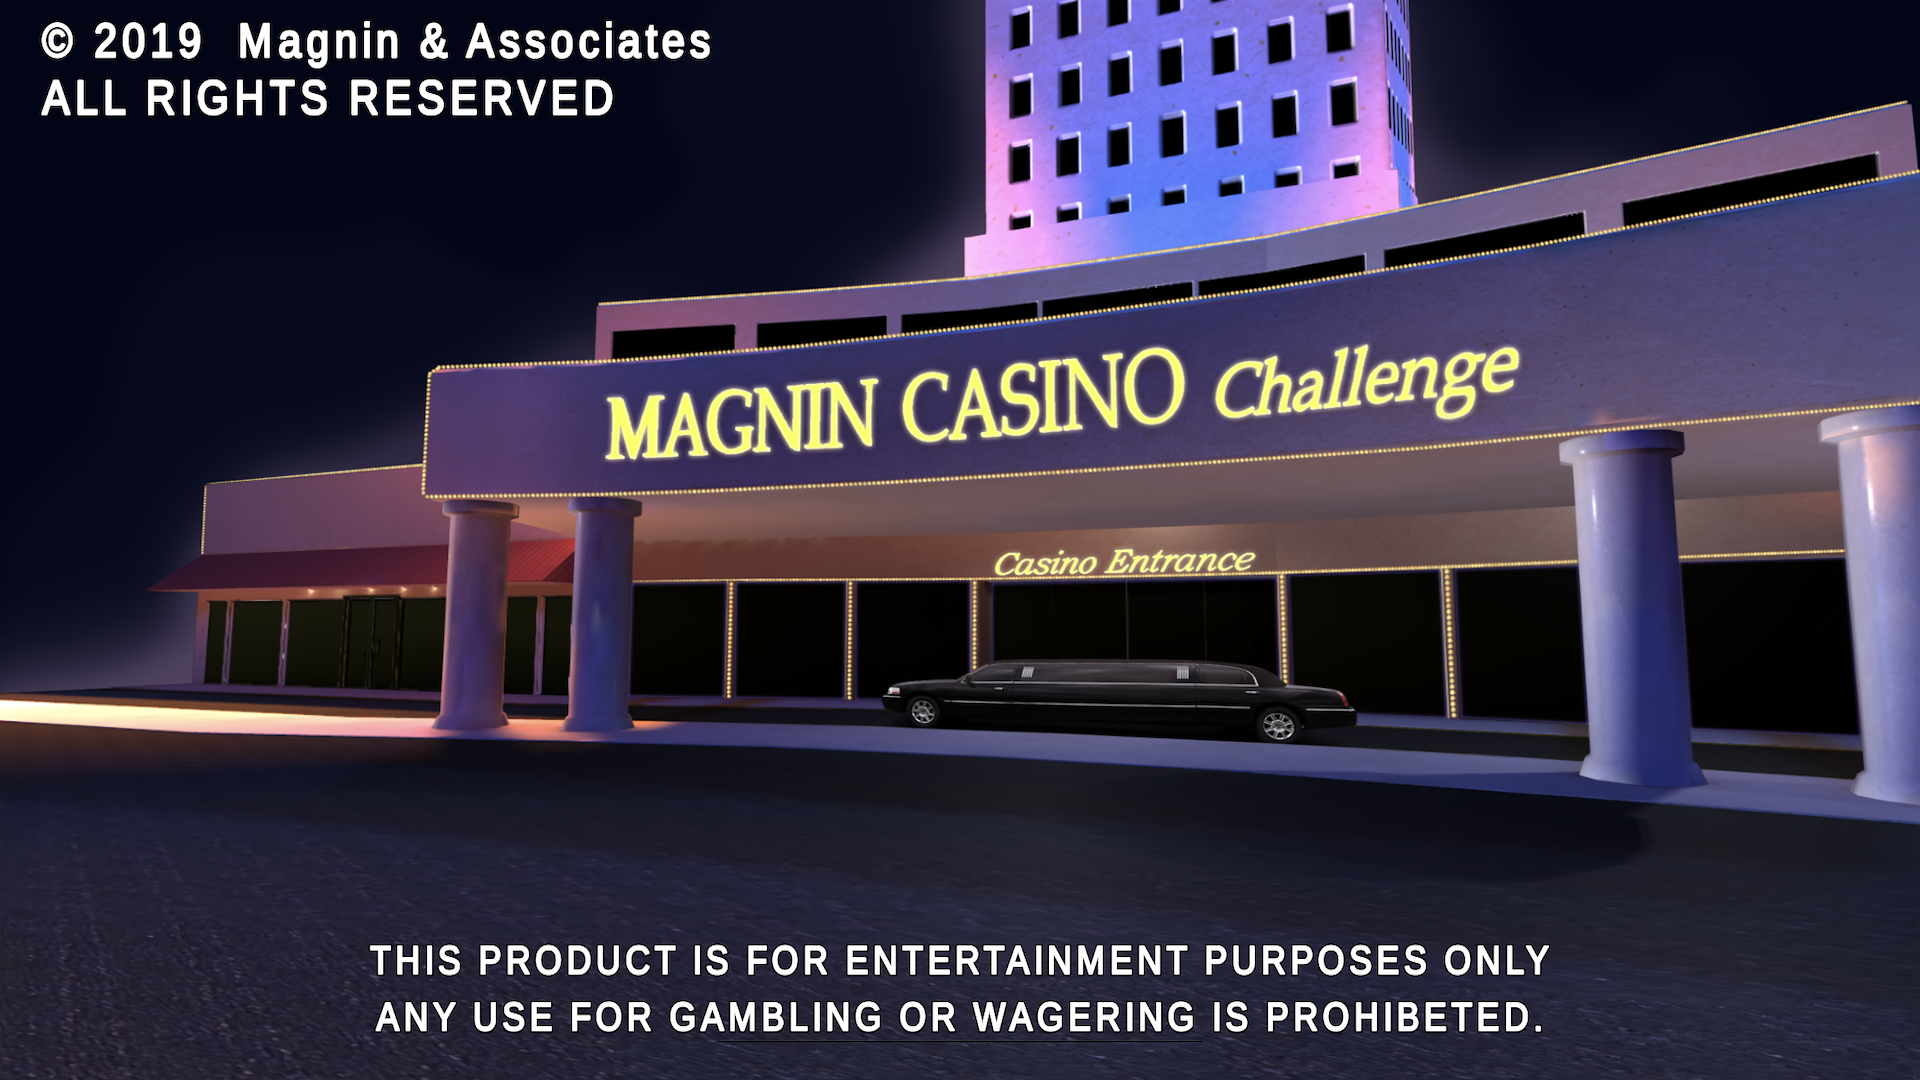 Magnin Casino Challenge for iOS, Android, Apple TV, Windows PC and Xbox Image